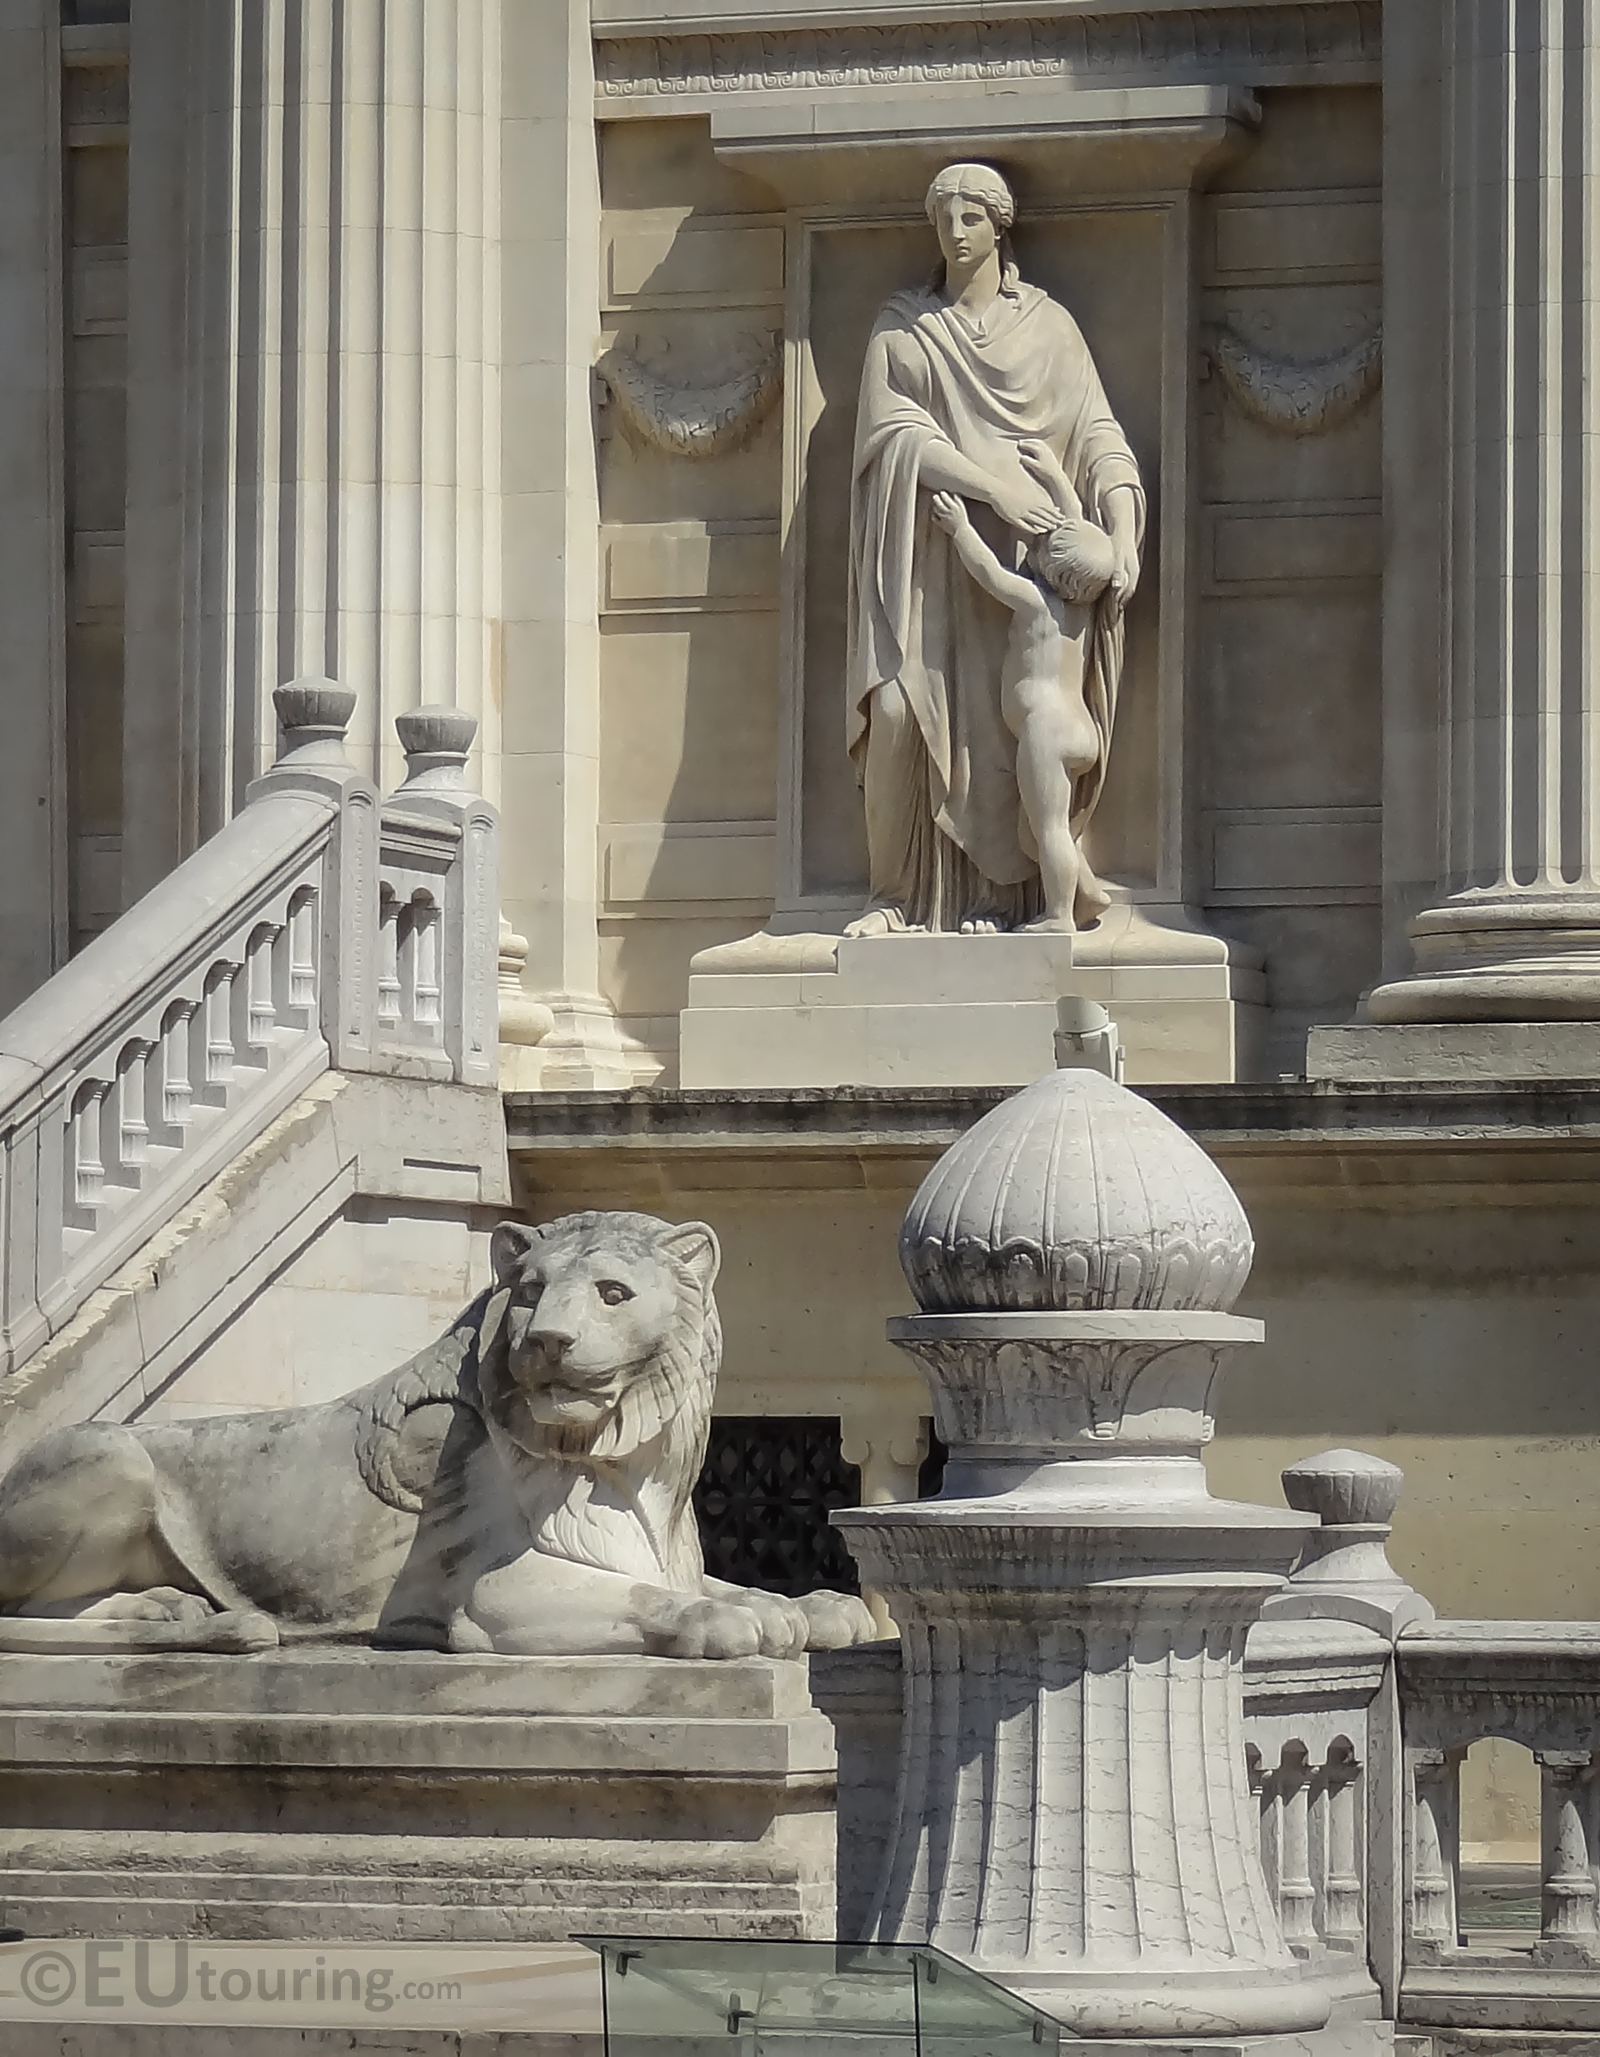 Statues in front of Palais de Justice